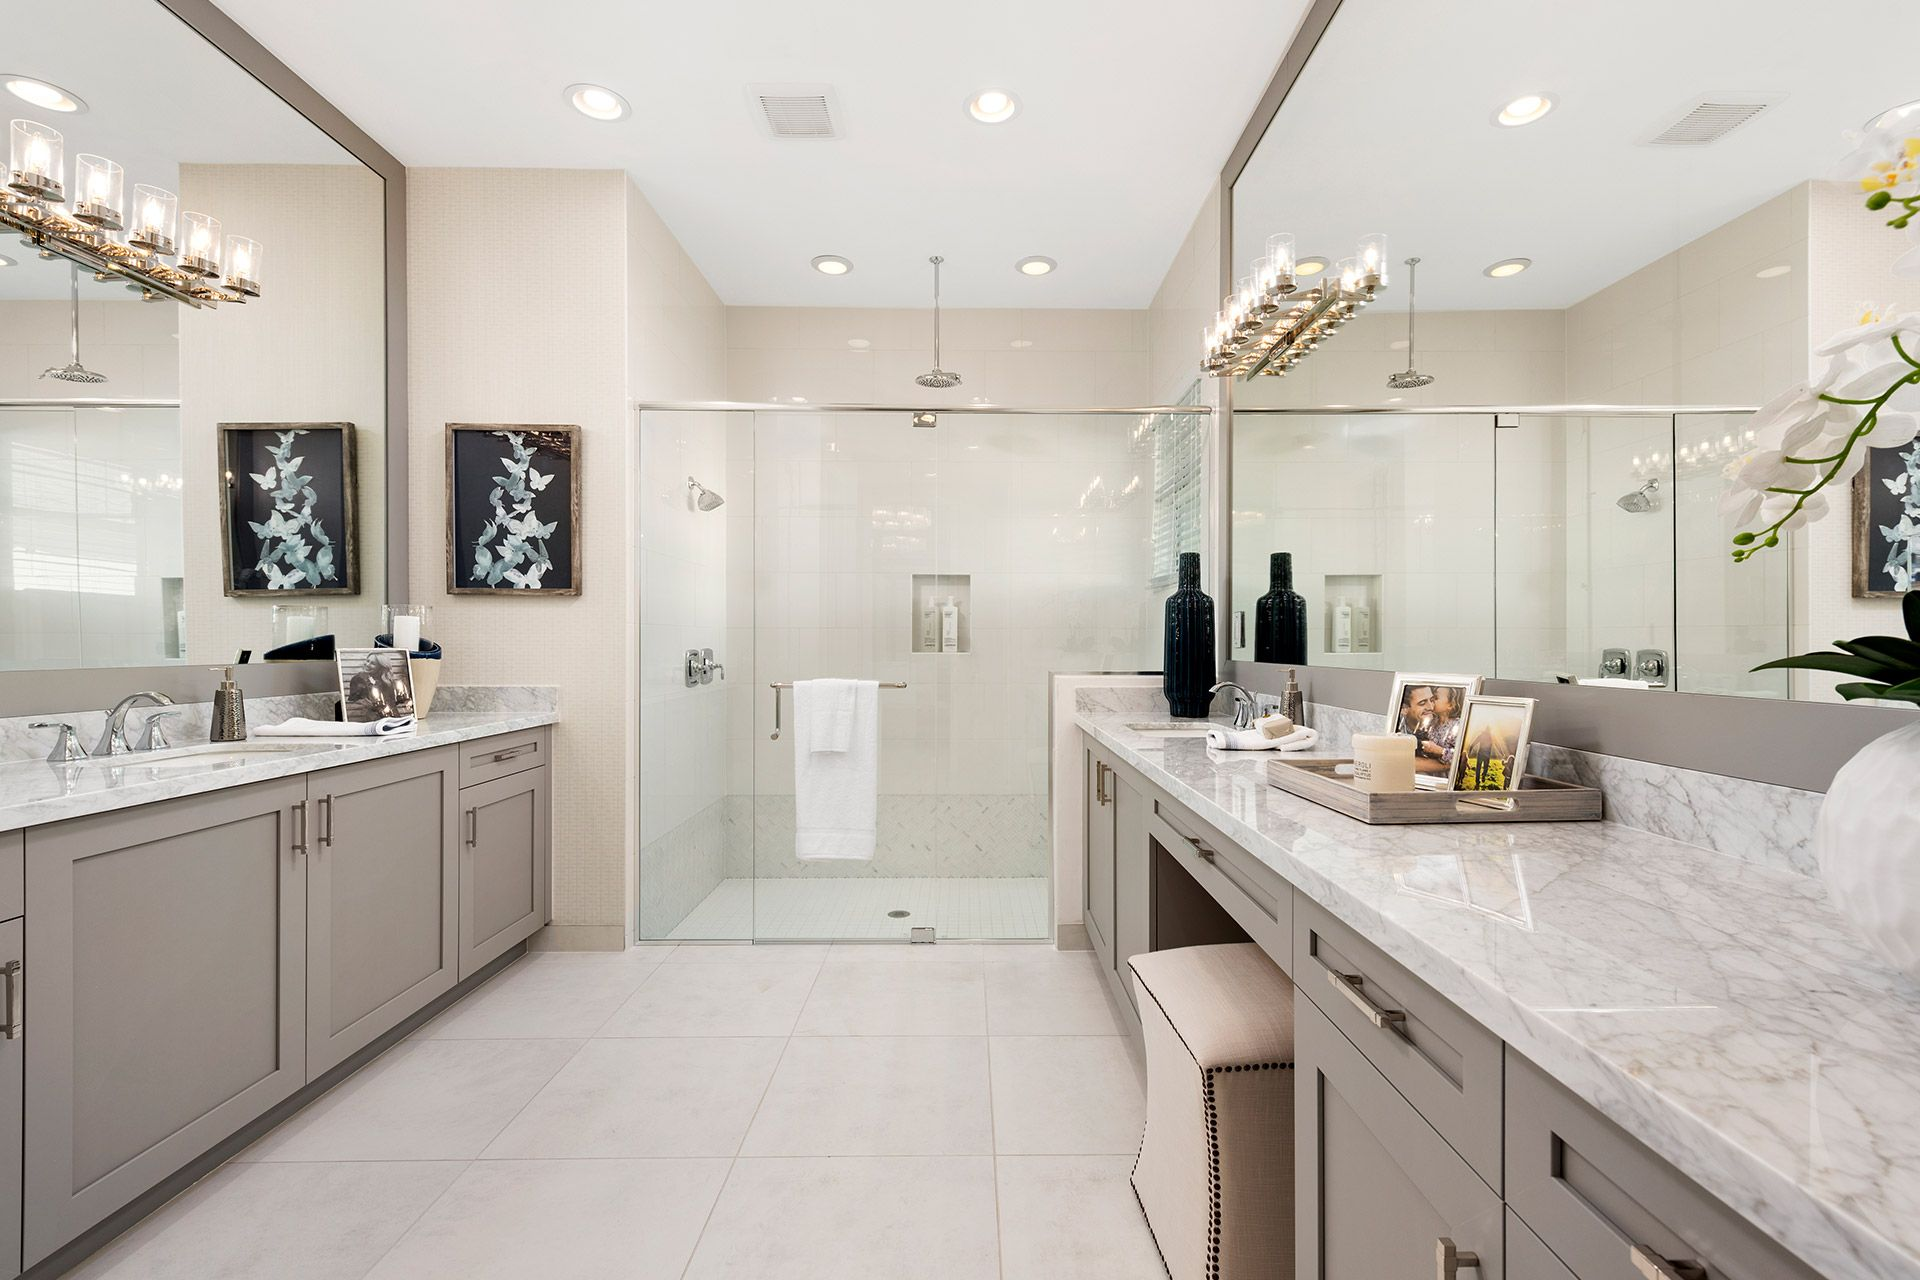 Bathroom featured in the Aruba By GL Homes in Palm Beach County, FL